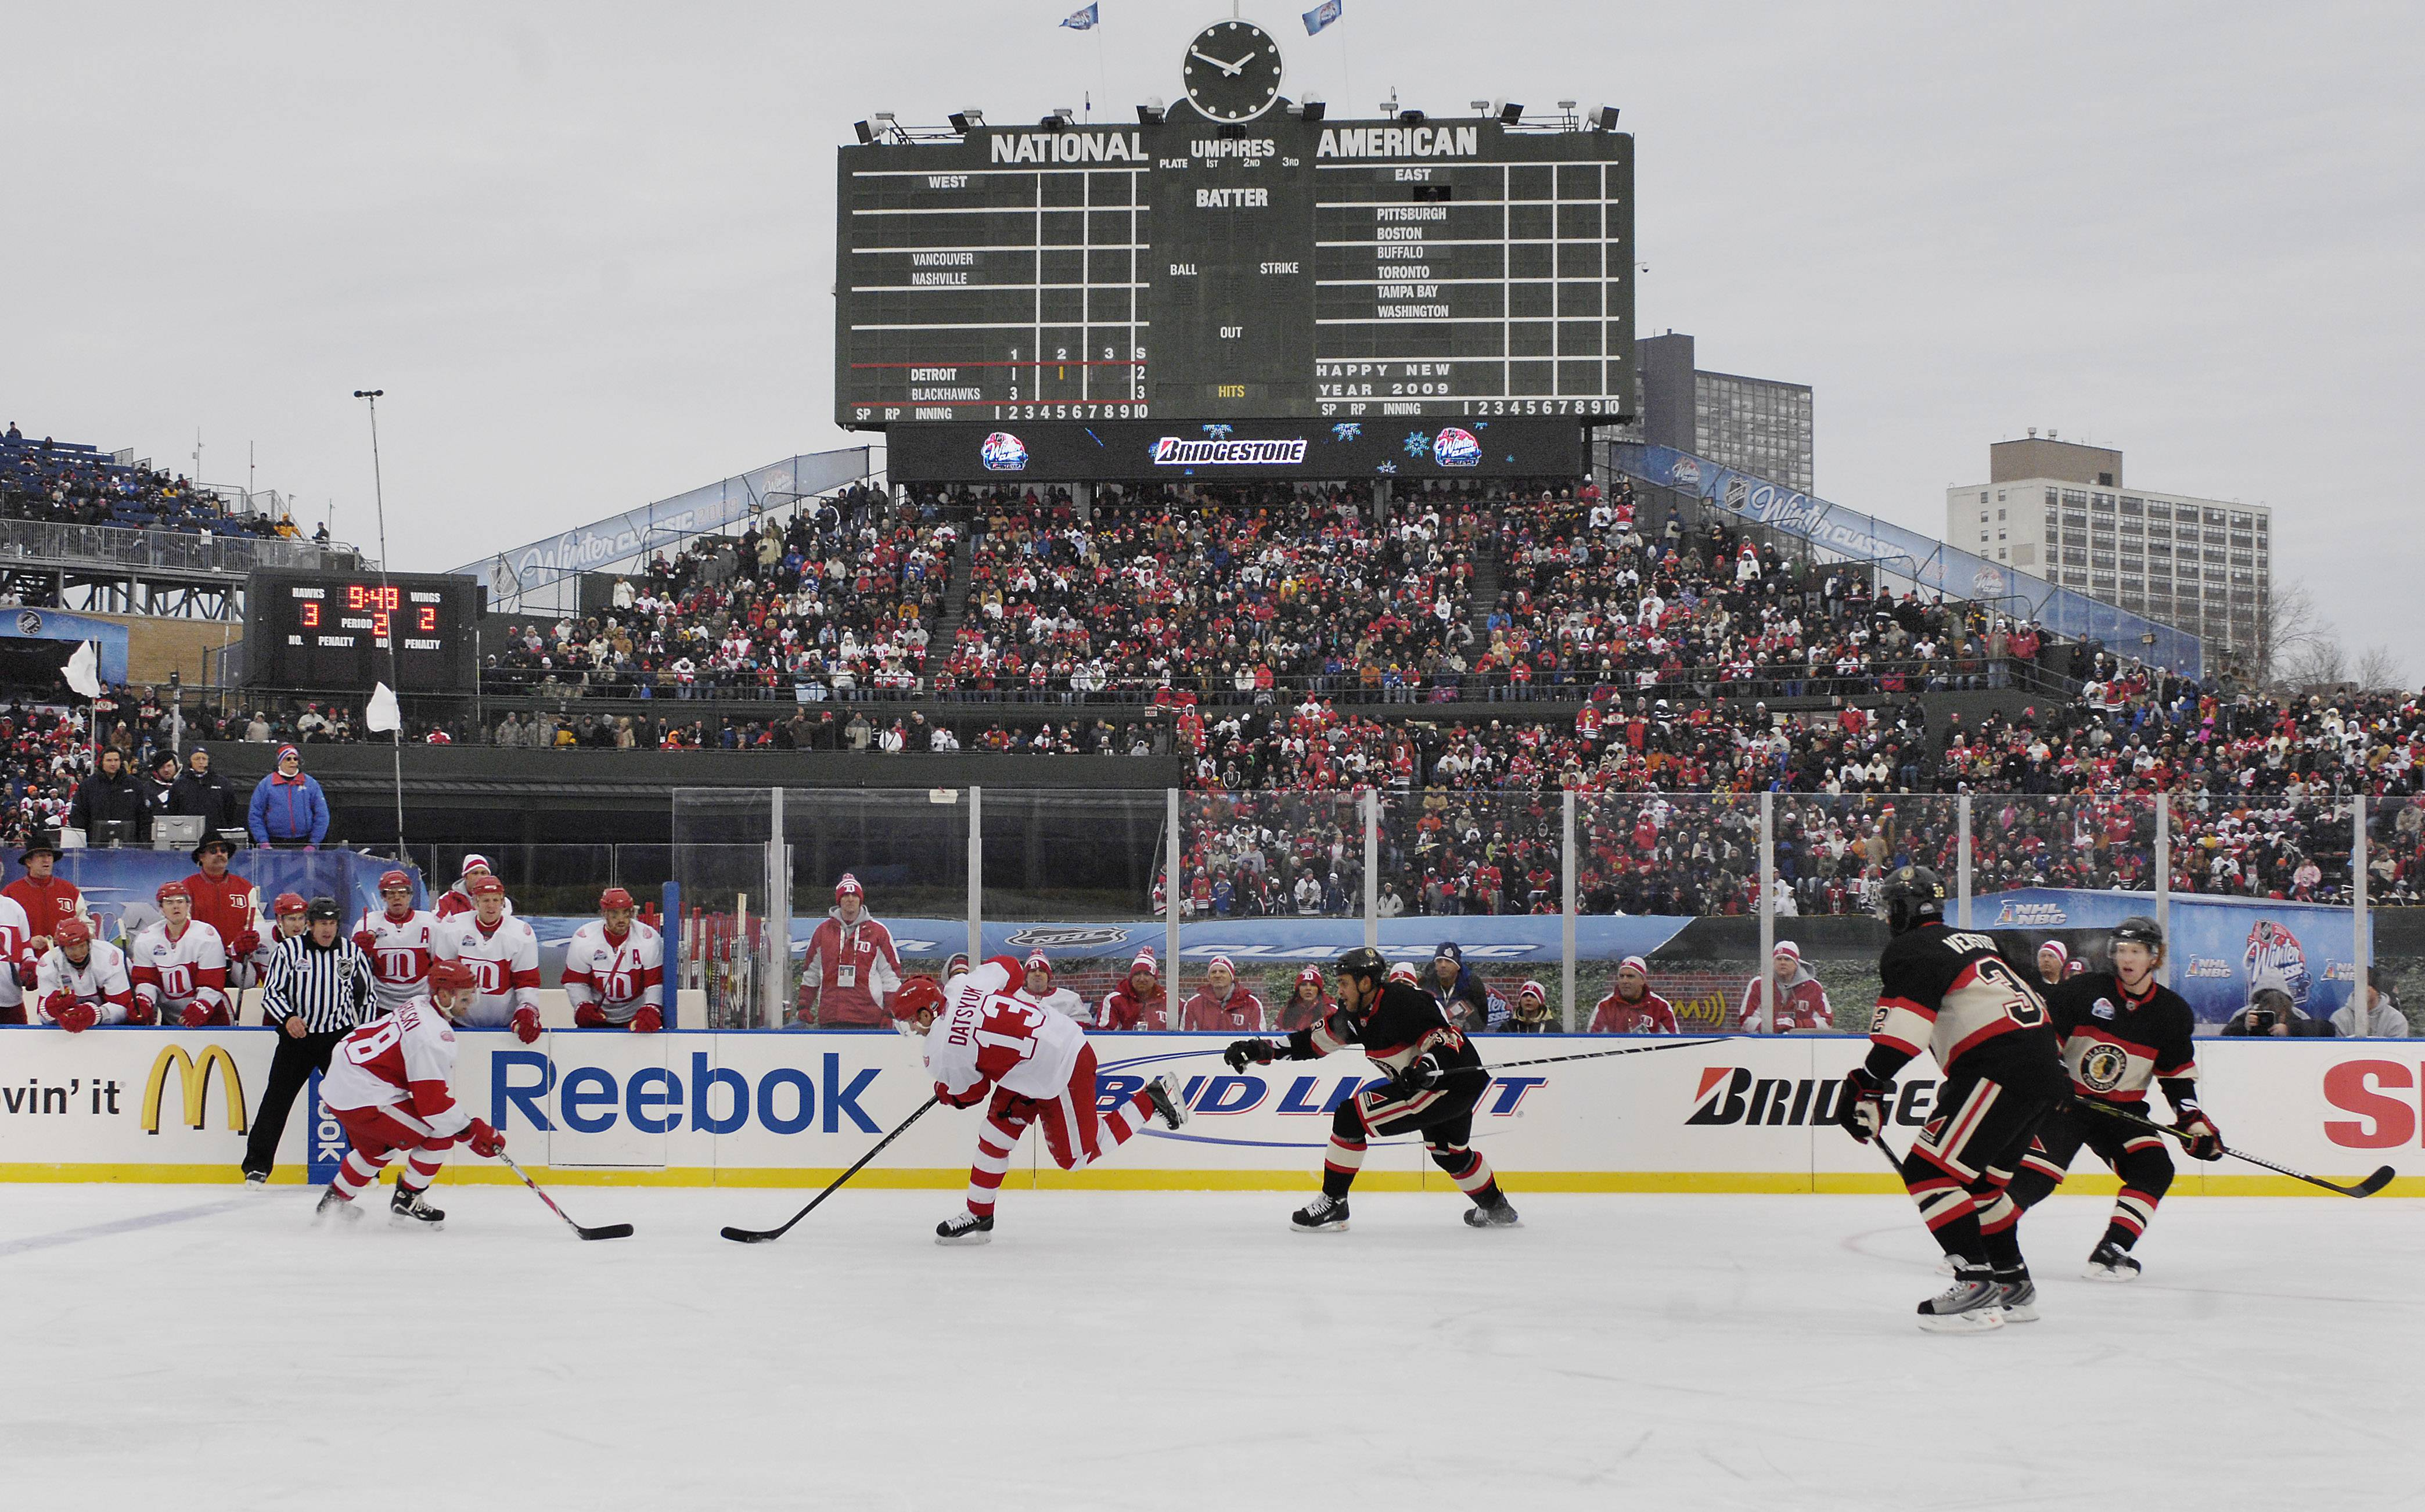 MARK WELSH/mwelsh@dailyherald.com, January 2009 The Chicago Blackhawks and Detroit Redwings batlte on the ice at Wrigley Field for the 2009 Winter Classic. The NHL announced Saturday that the Chicago Blackhawks will take on the Boston Bruins in the 2019 Winter Classic at Notre Dame Stadium in Jan. 1, 2019. It will be the fifth time the Hawks have played outside since 2009.